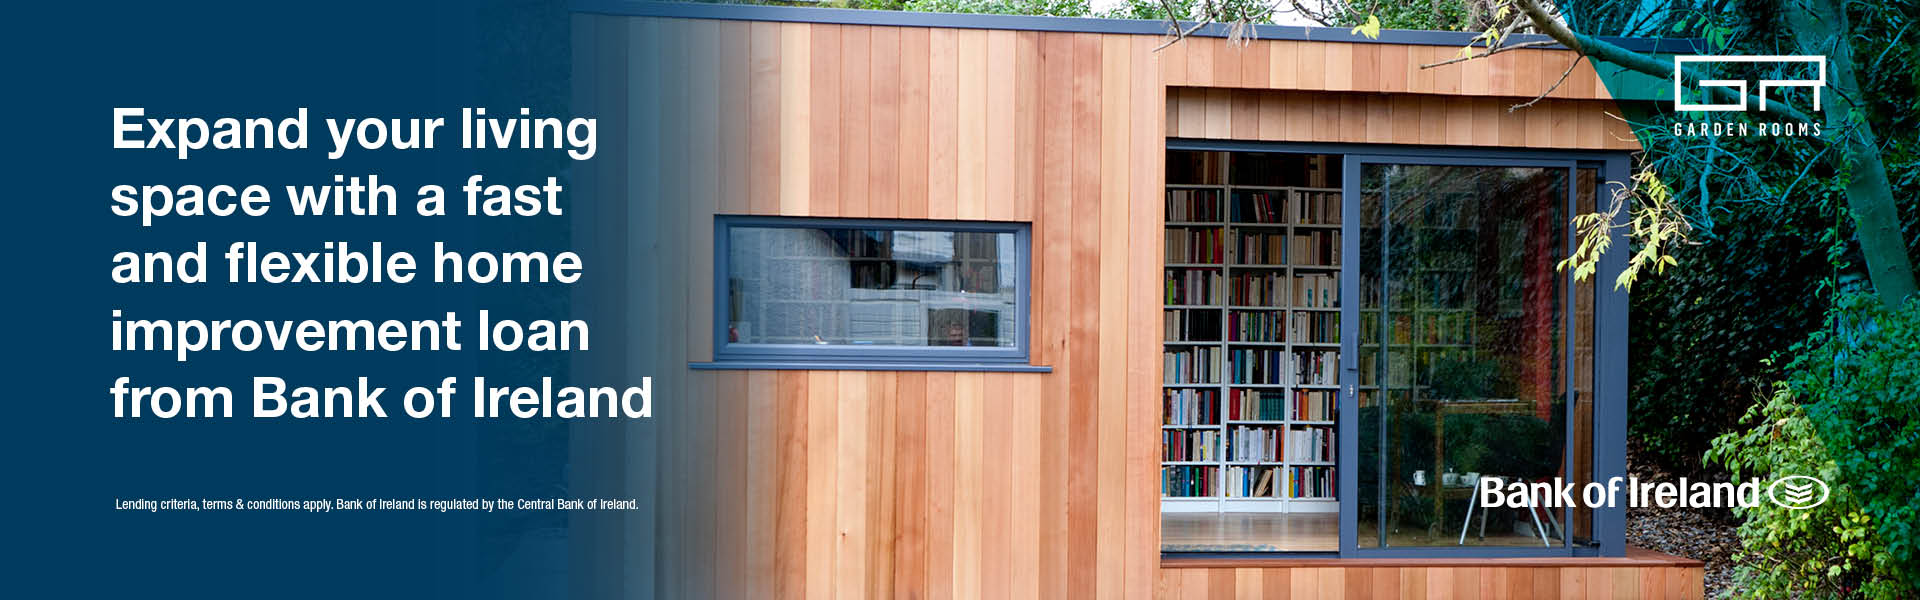 Container Haus Irland Garden Rooms Architecturally Designed Garden Rooms Home Offices